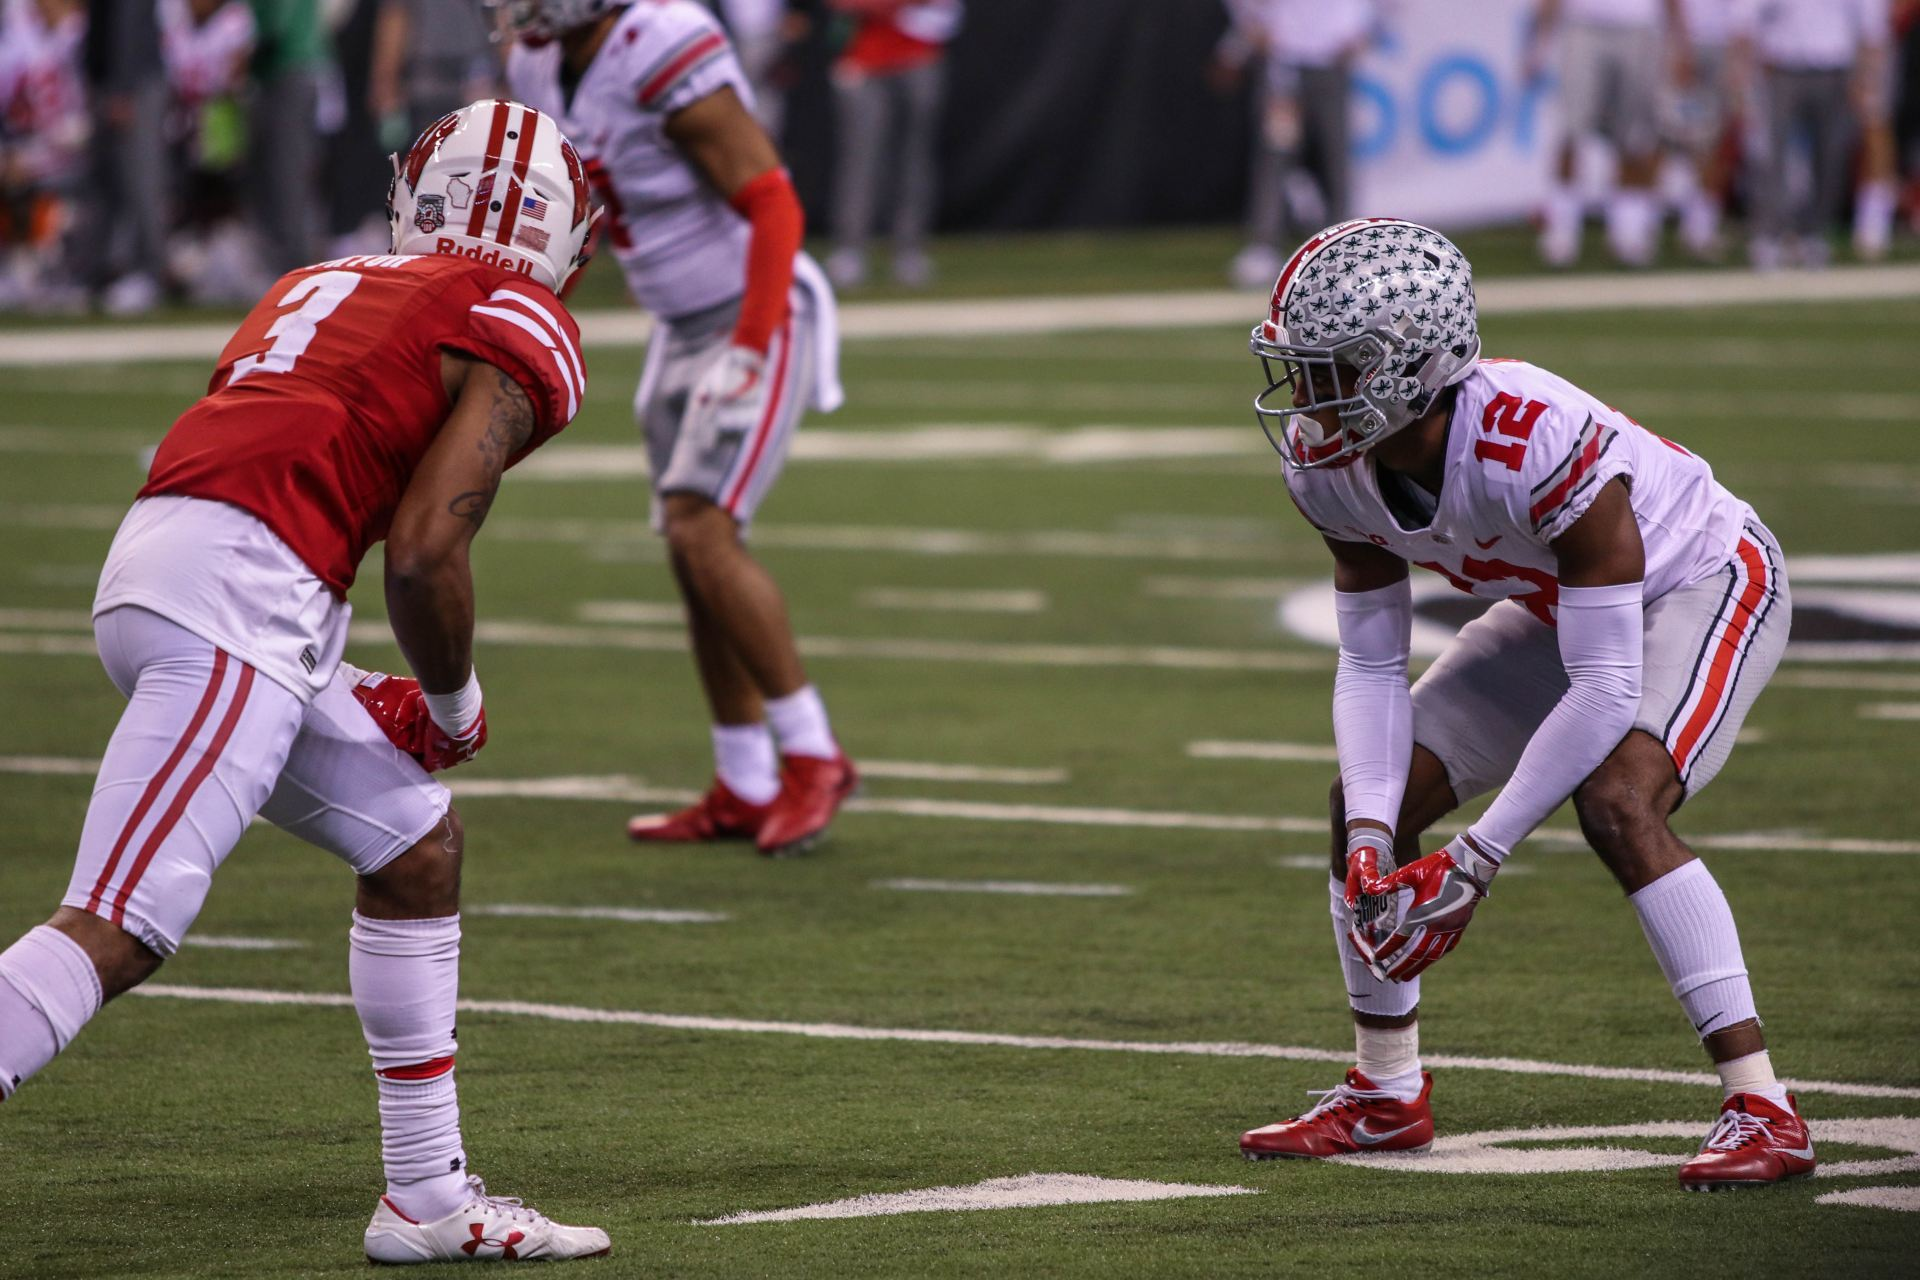 Ohio State junior cornerback Denzel Ward (12) sets up prior to a play in  the second quarter of the B1G Championship game against Wisconsin on Dec. 6a540bce2